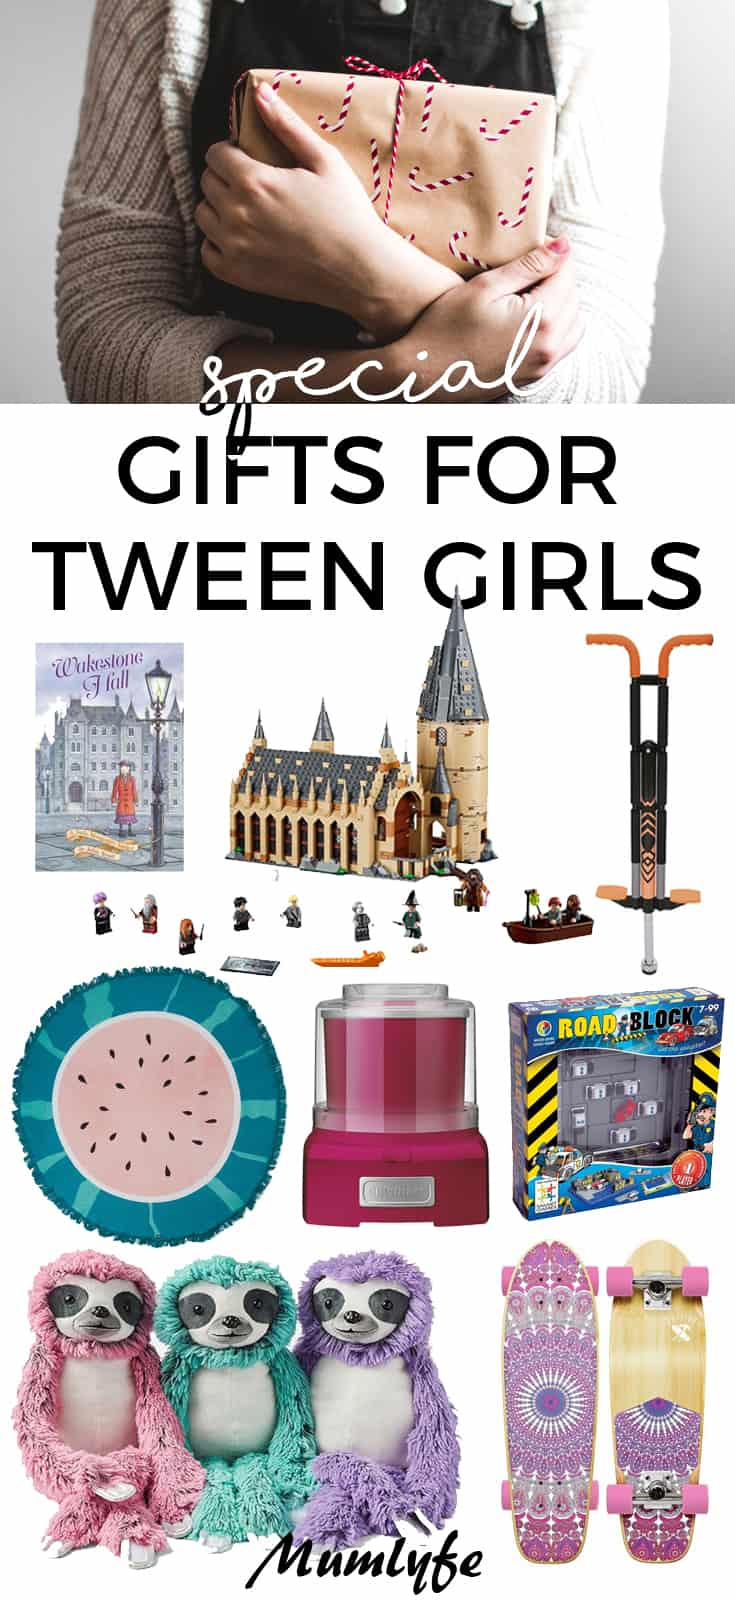 21+ Christmas gift ideas for tween girls they will really love | Mumlyfe